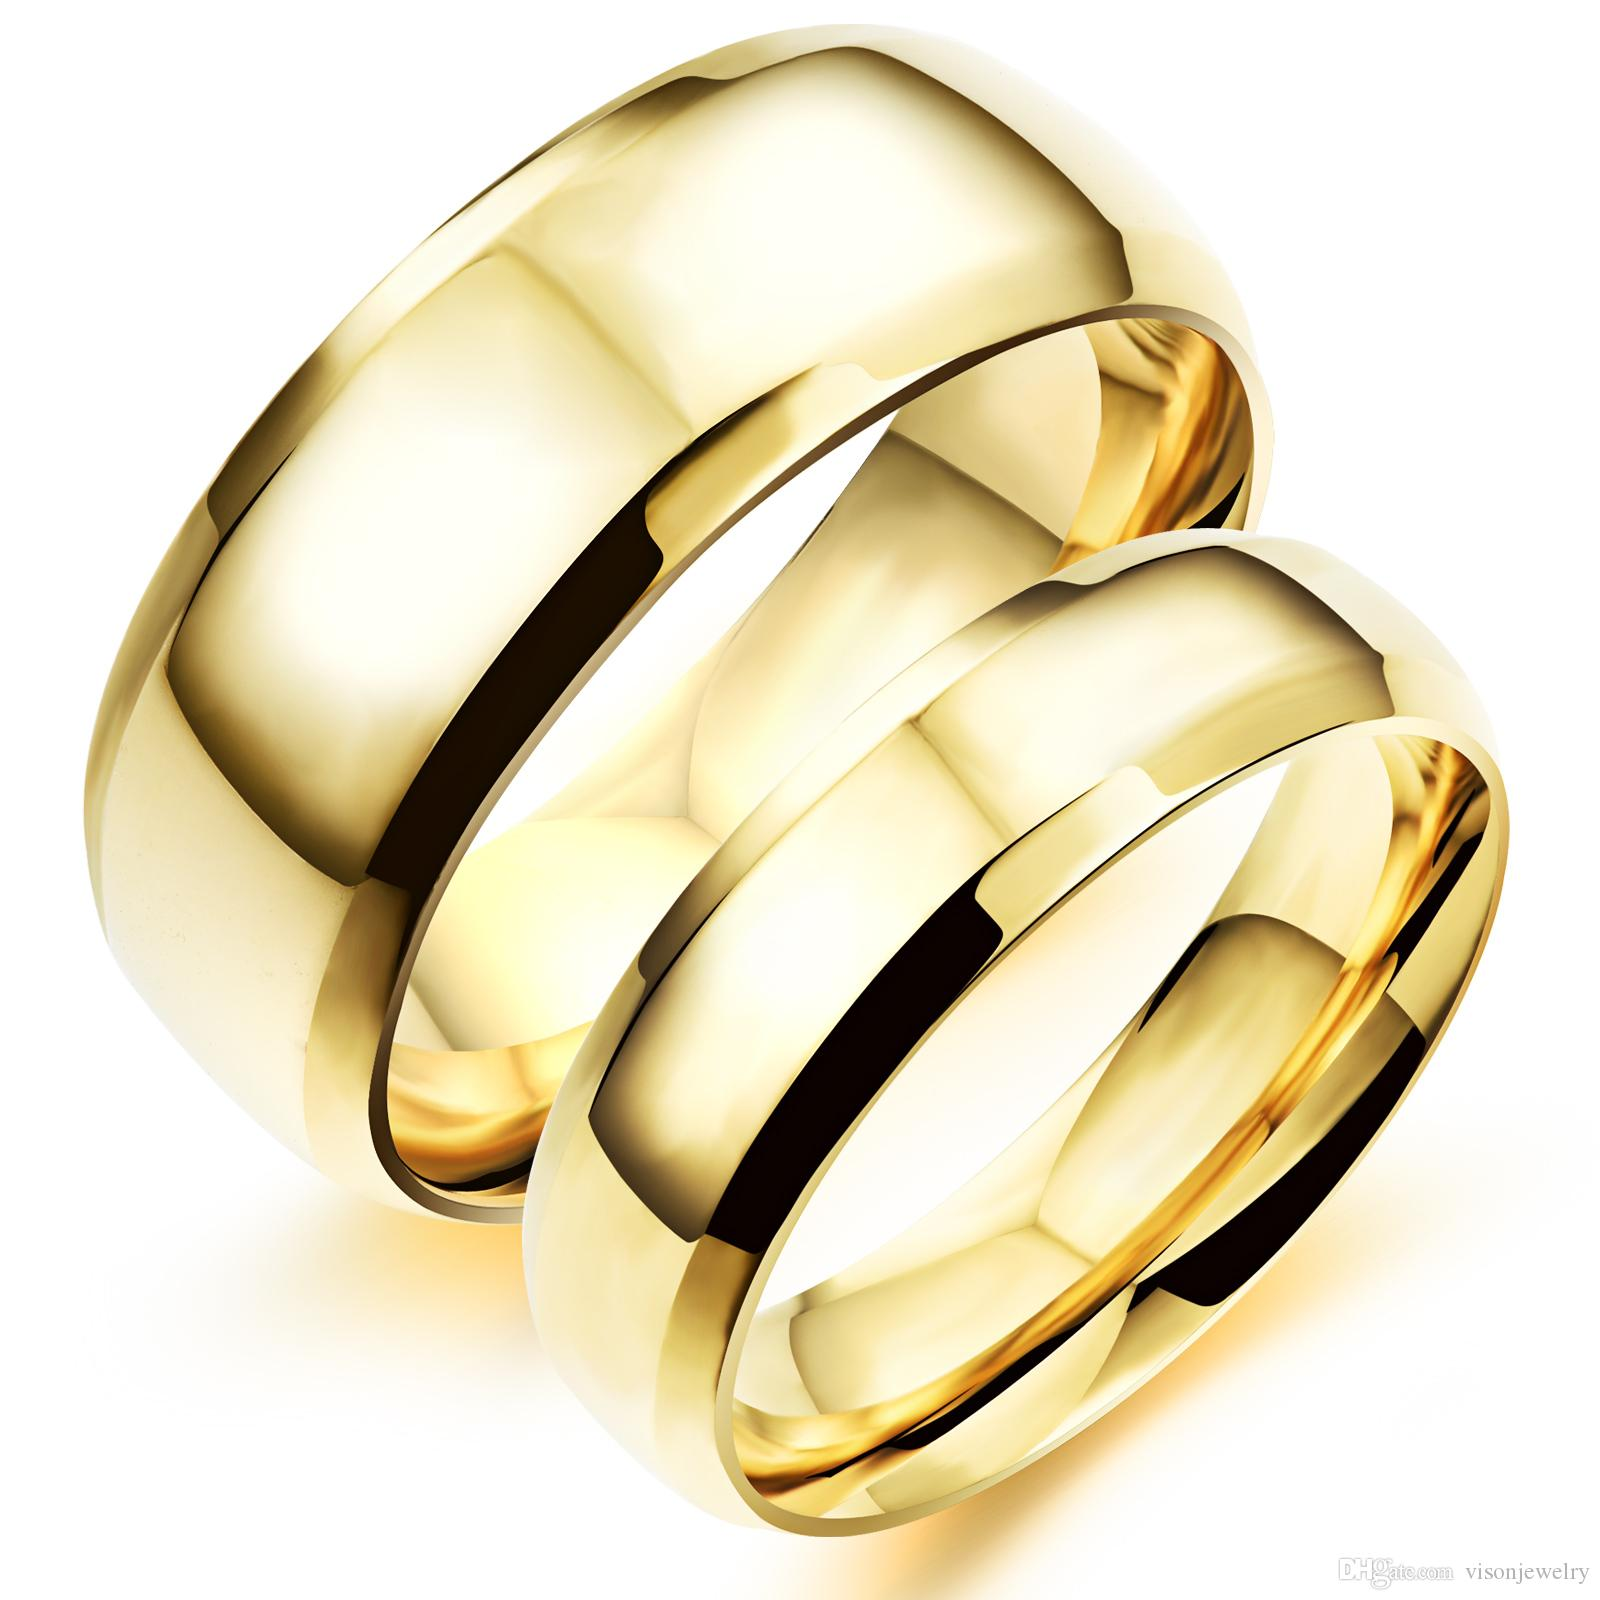 band rings middle eastern couple wholesale high polished rings fashion stainless steel rings for lovers 18k gold plated classic couple wedding rings women - Wedding Rings For Couples